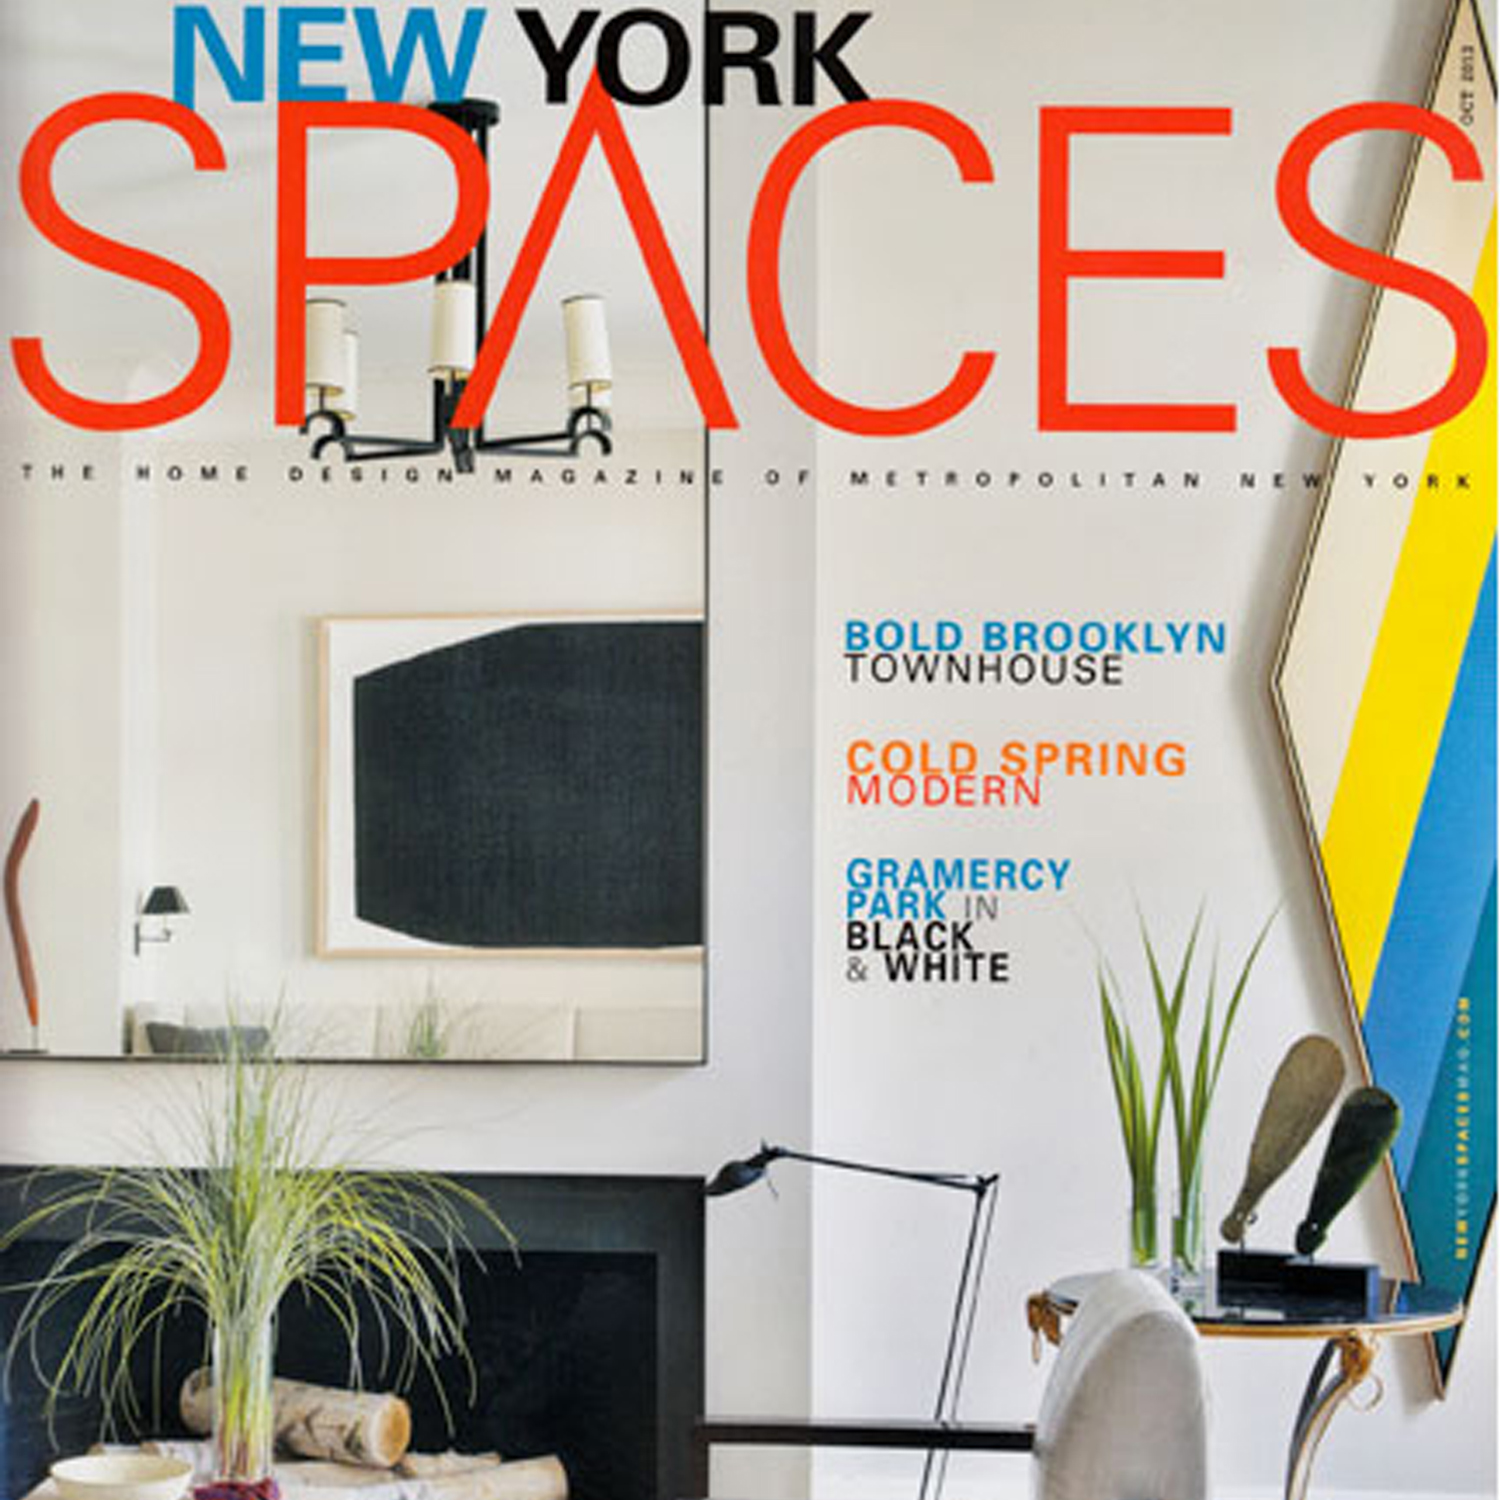 New York Spaces, 2013